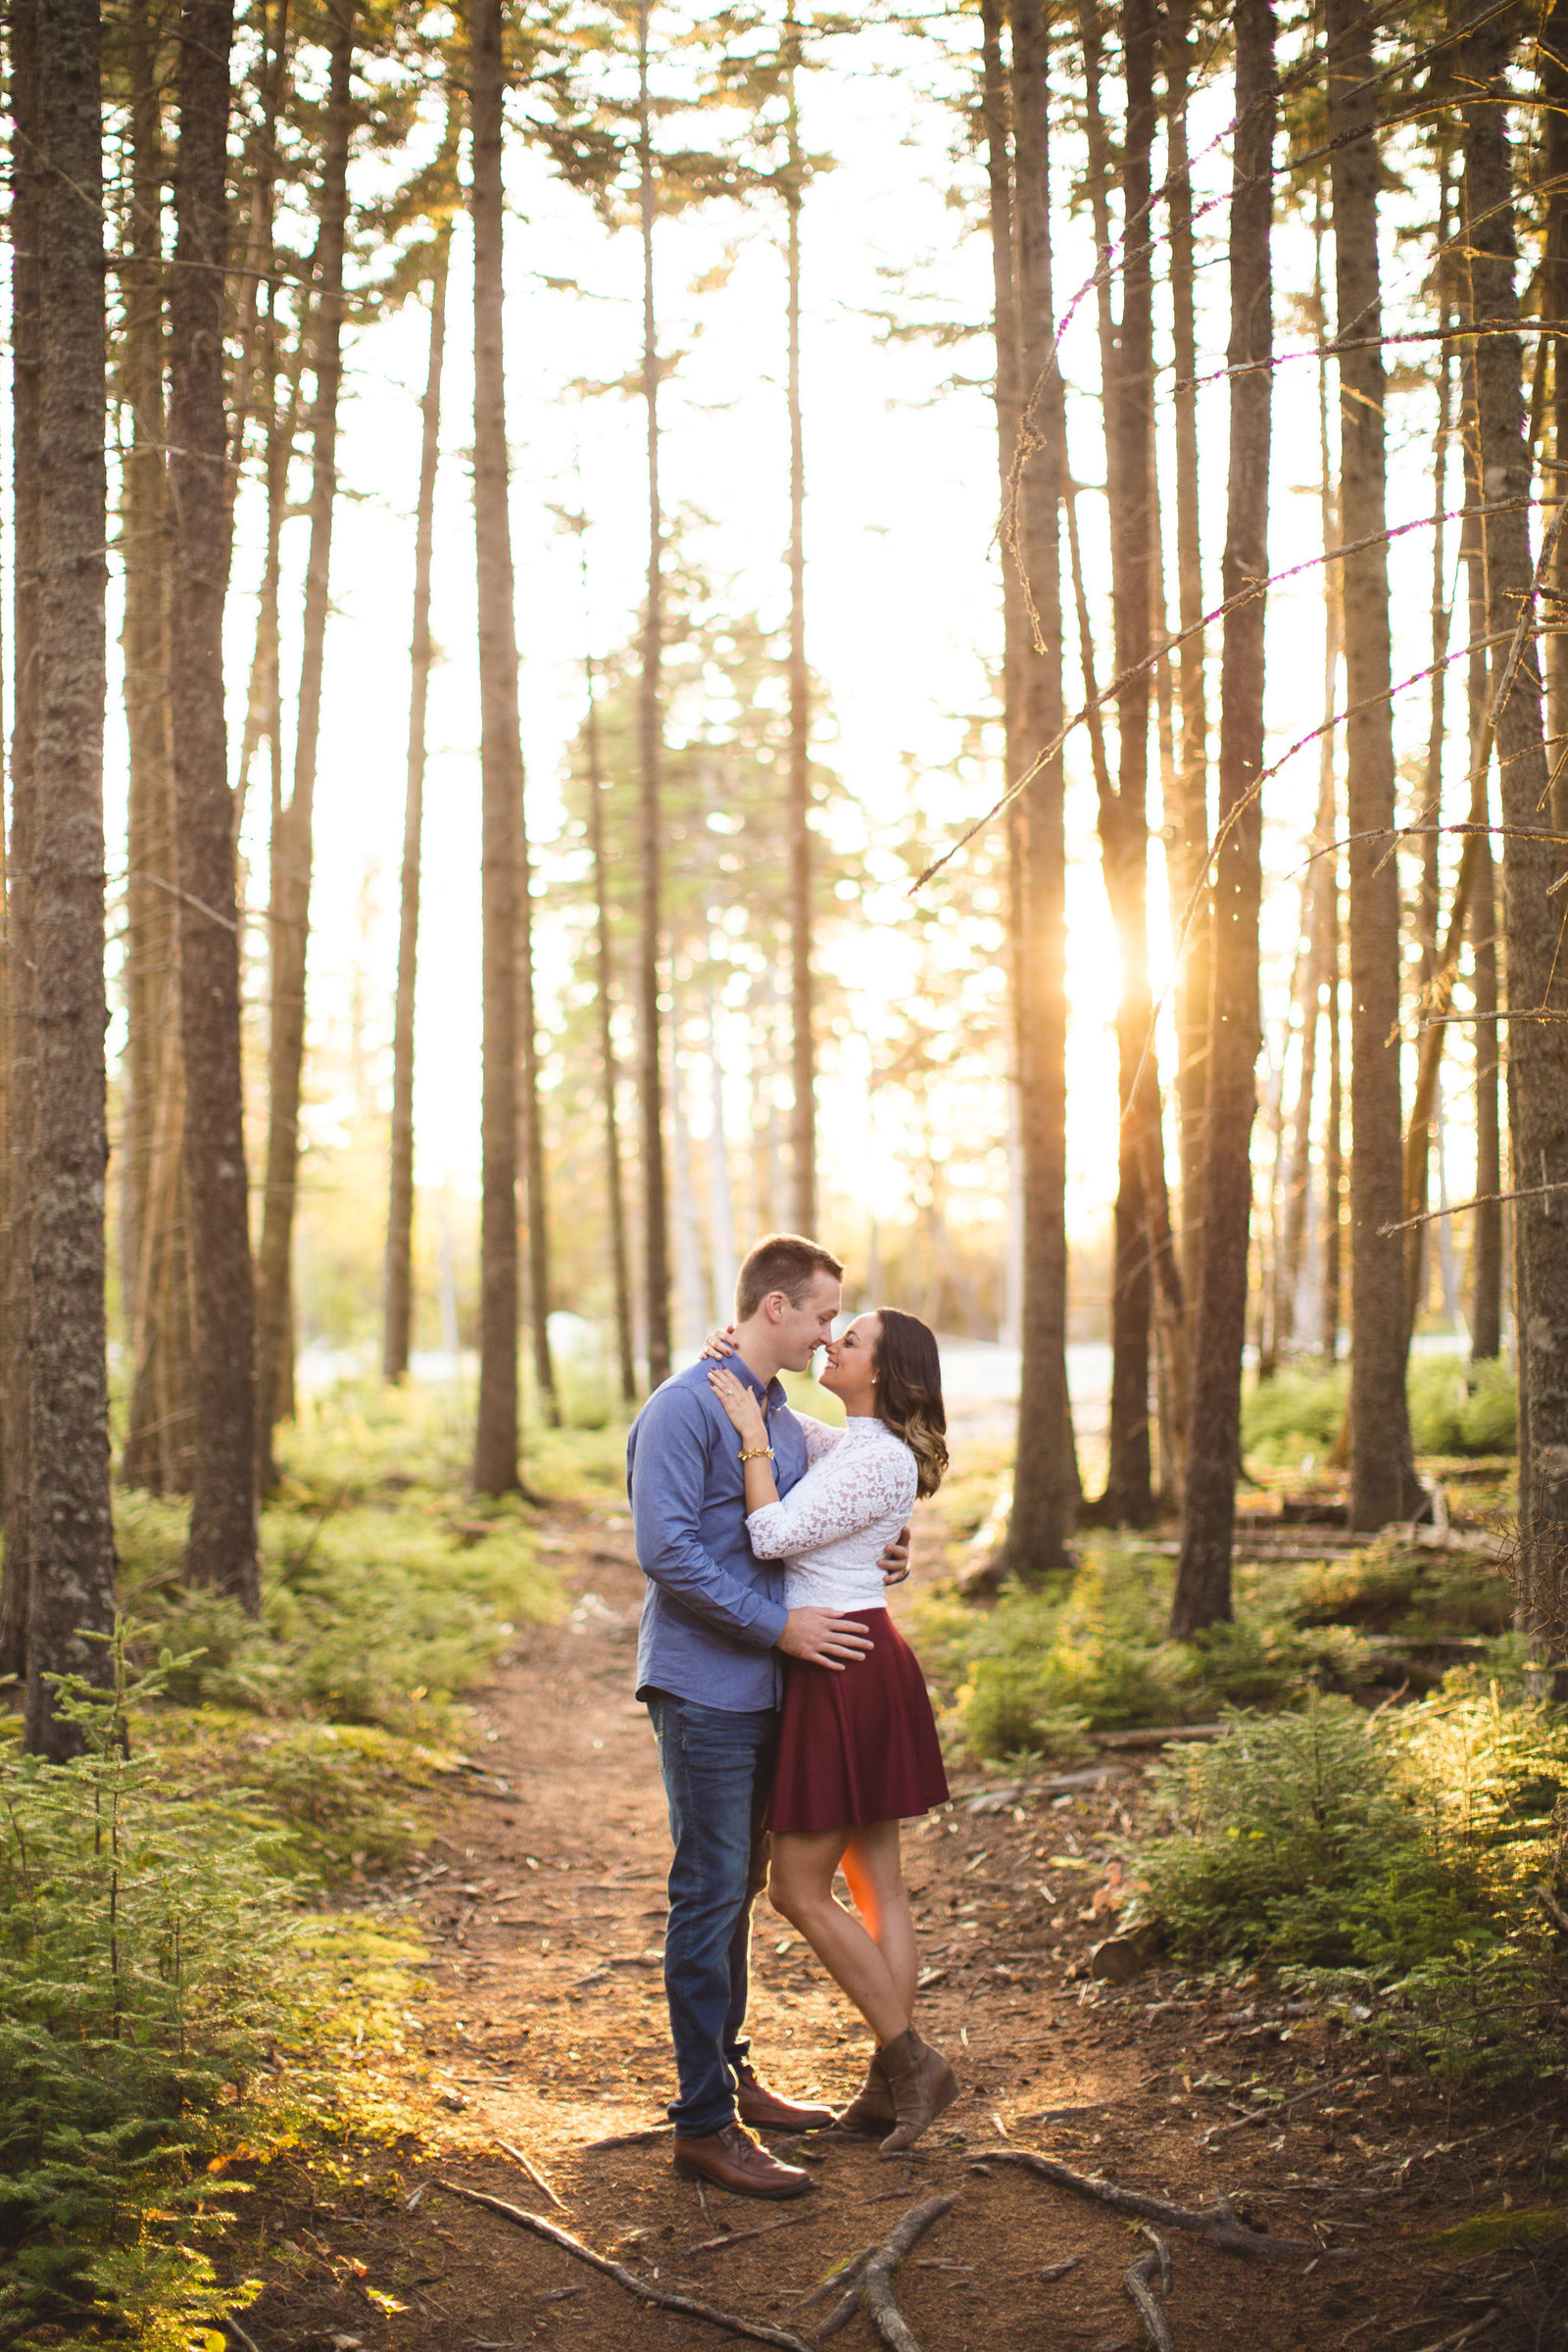 Saint John Engagement Photos by Jordan & Judith - Saint John NB Wedding Photographers and Filmmakers40